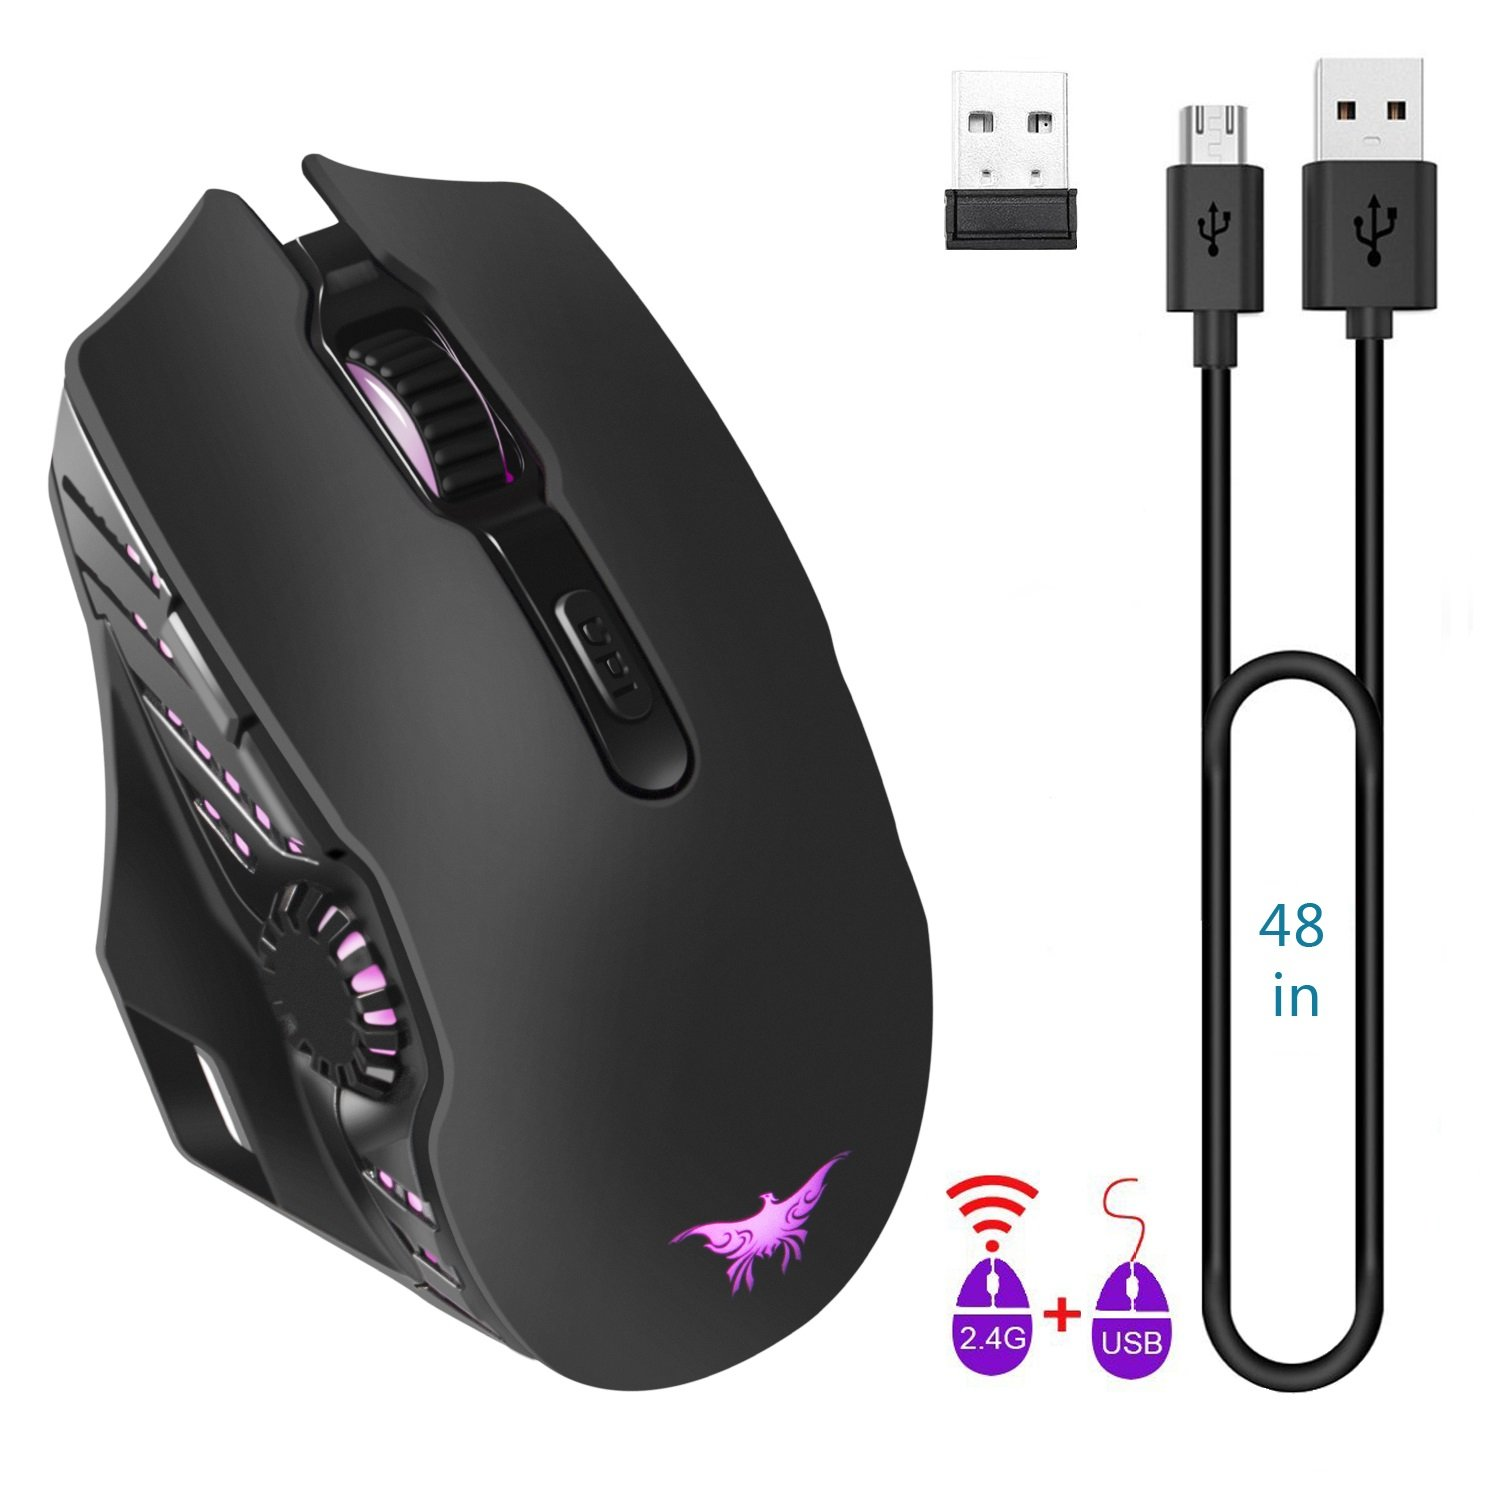 JinSun Rechargeable Laptop Wireless Gaming Mouse 2 in 1 Wireless & Wired Optical Mice with USB, 5 Buttons, 6 Colors Breathing Lights for PC and Mac, 6 Adjustable DPI Levels for Laptop Mac Pro and PC